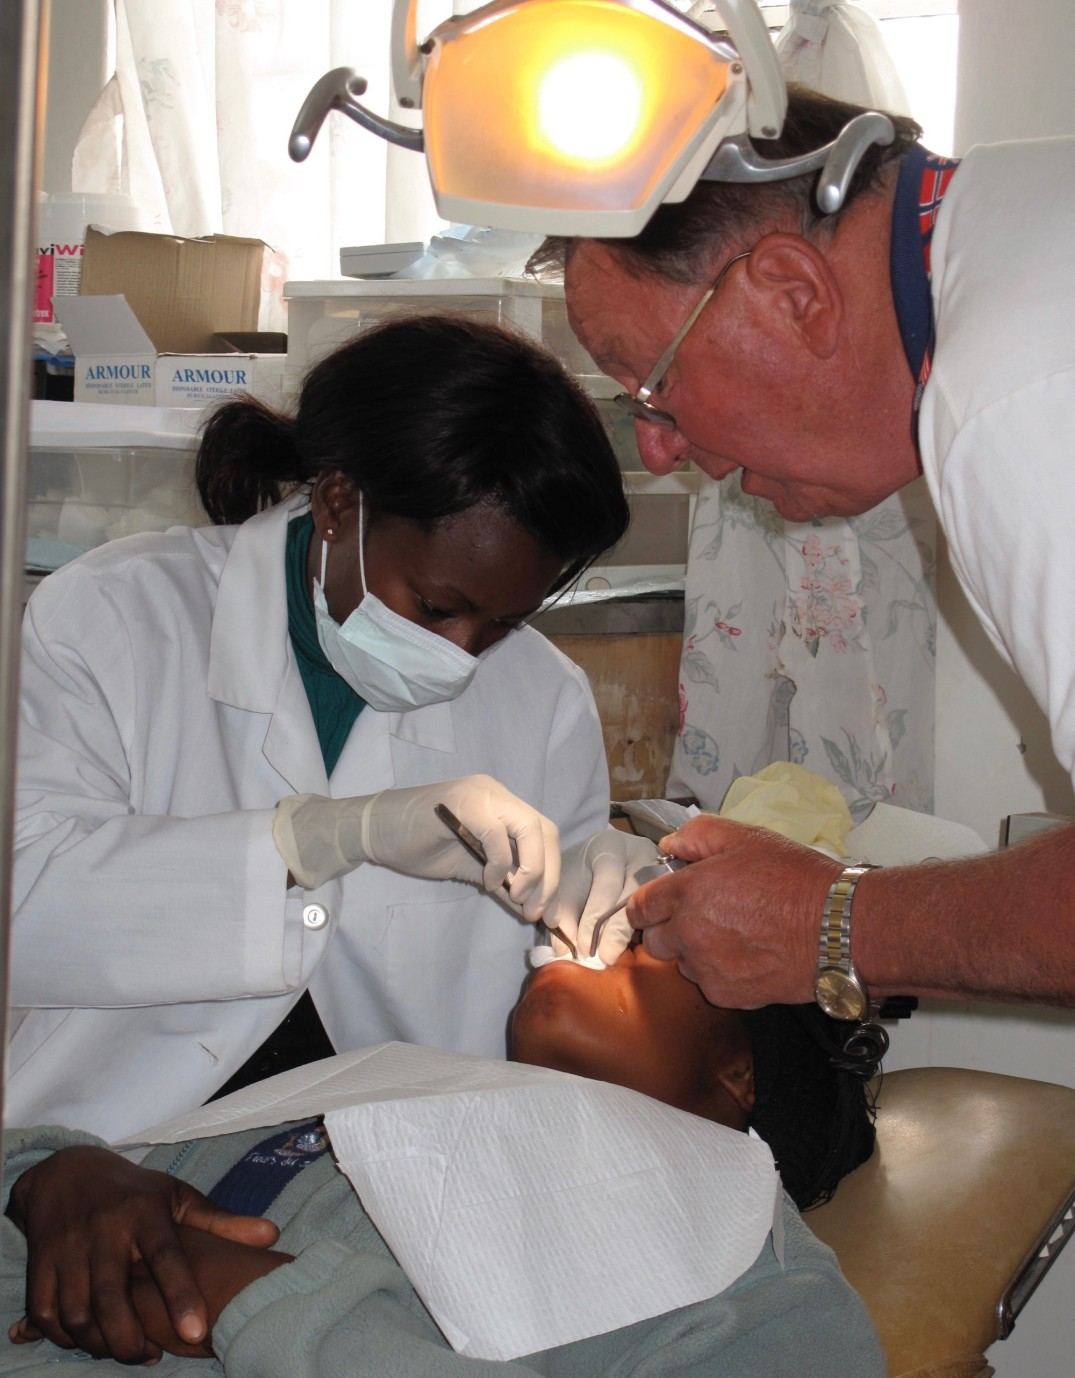 As Brenda advanced in her education, Jim Green coached her when he visited the IVV Dental Clinic in Zimba.